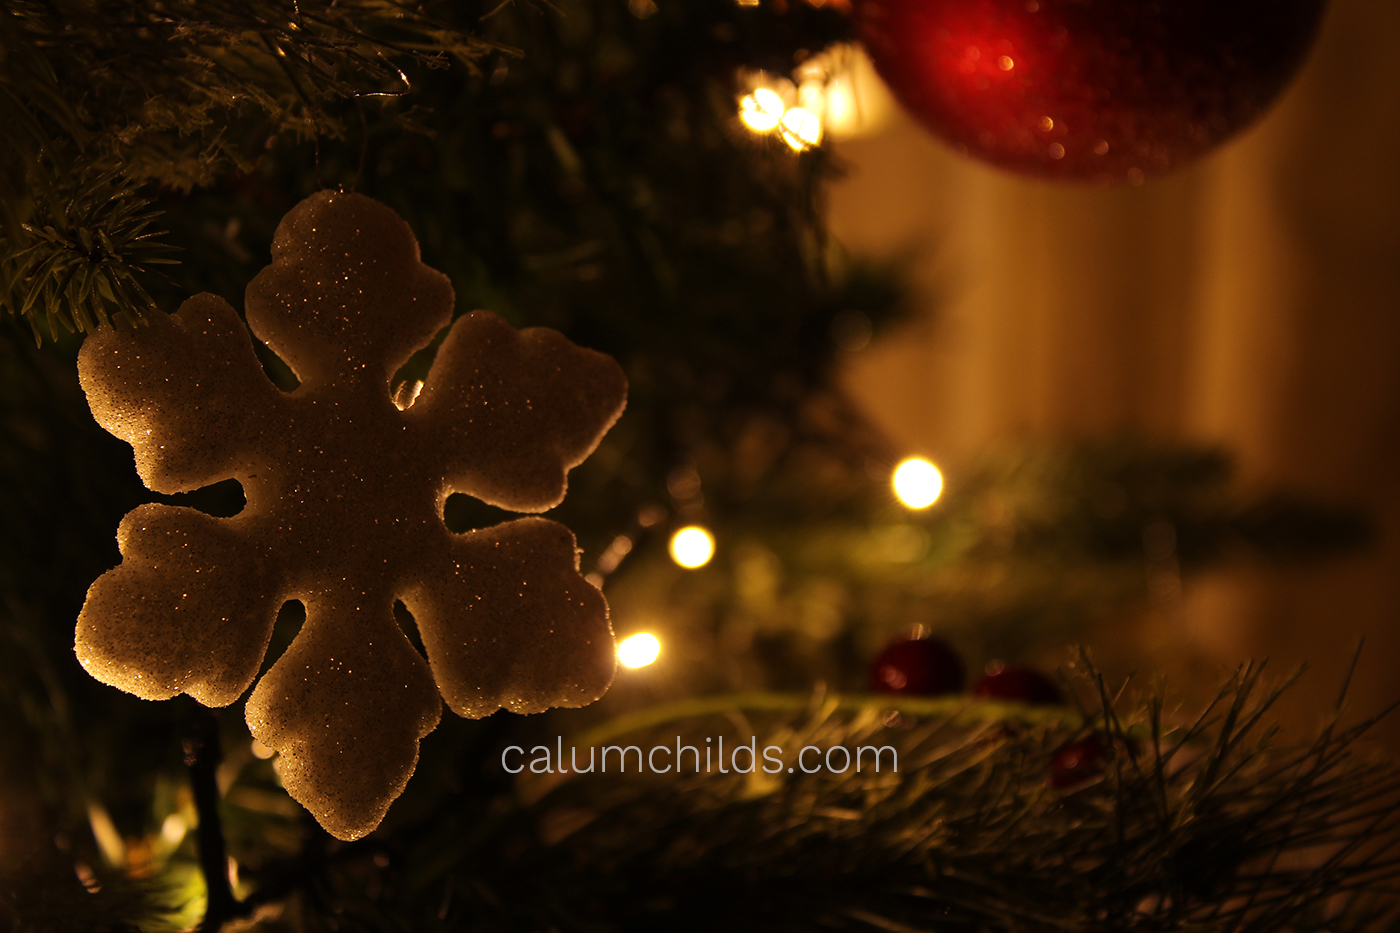 A snowflake shaped Christmas decoration hangs on the Christmas tree.